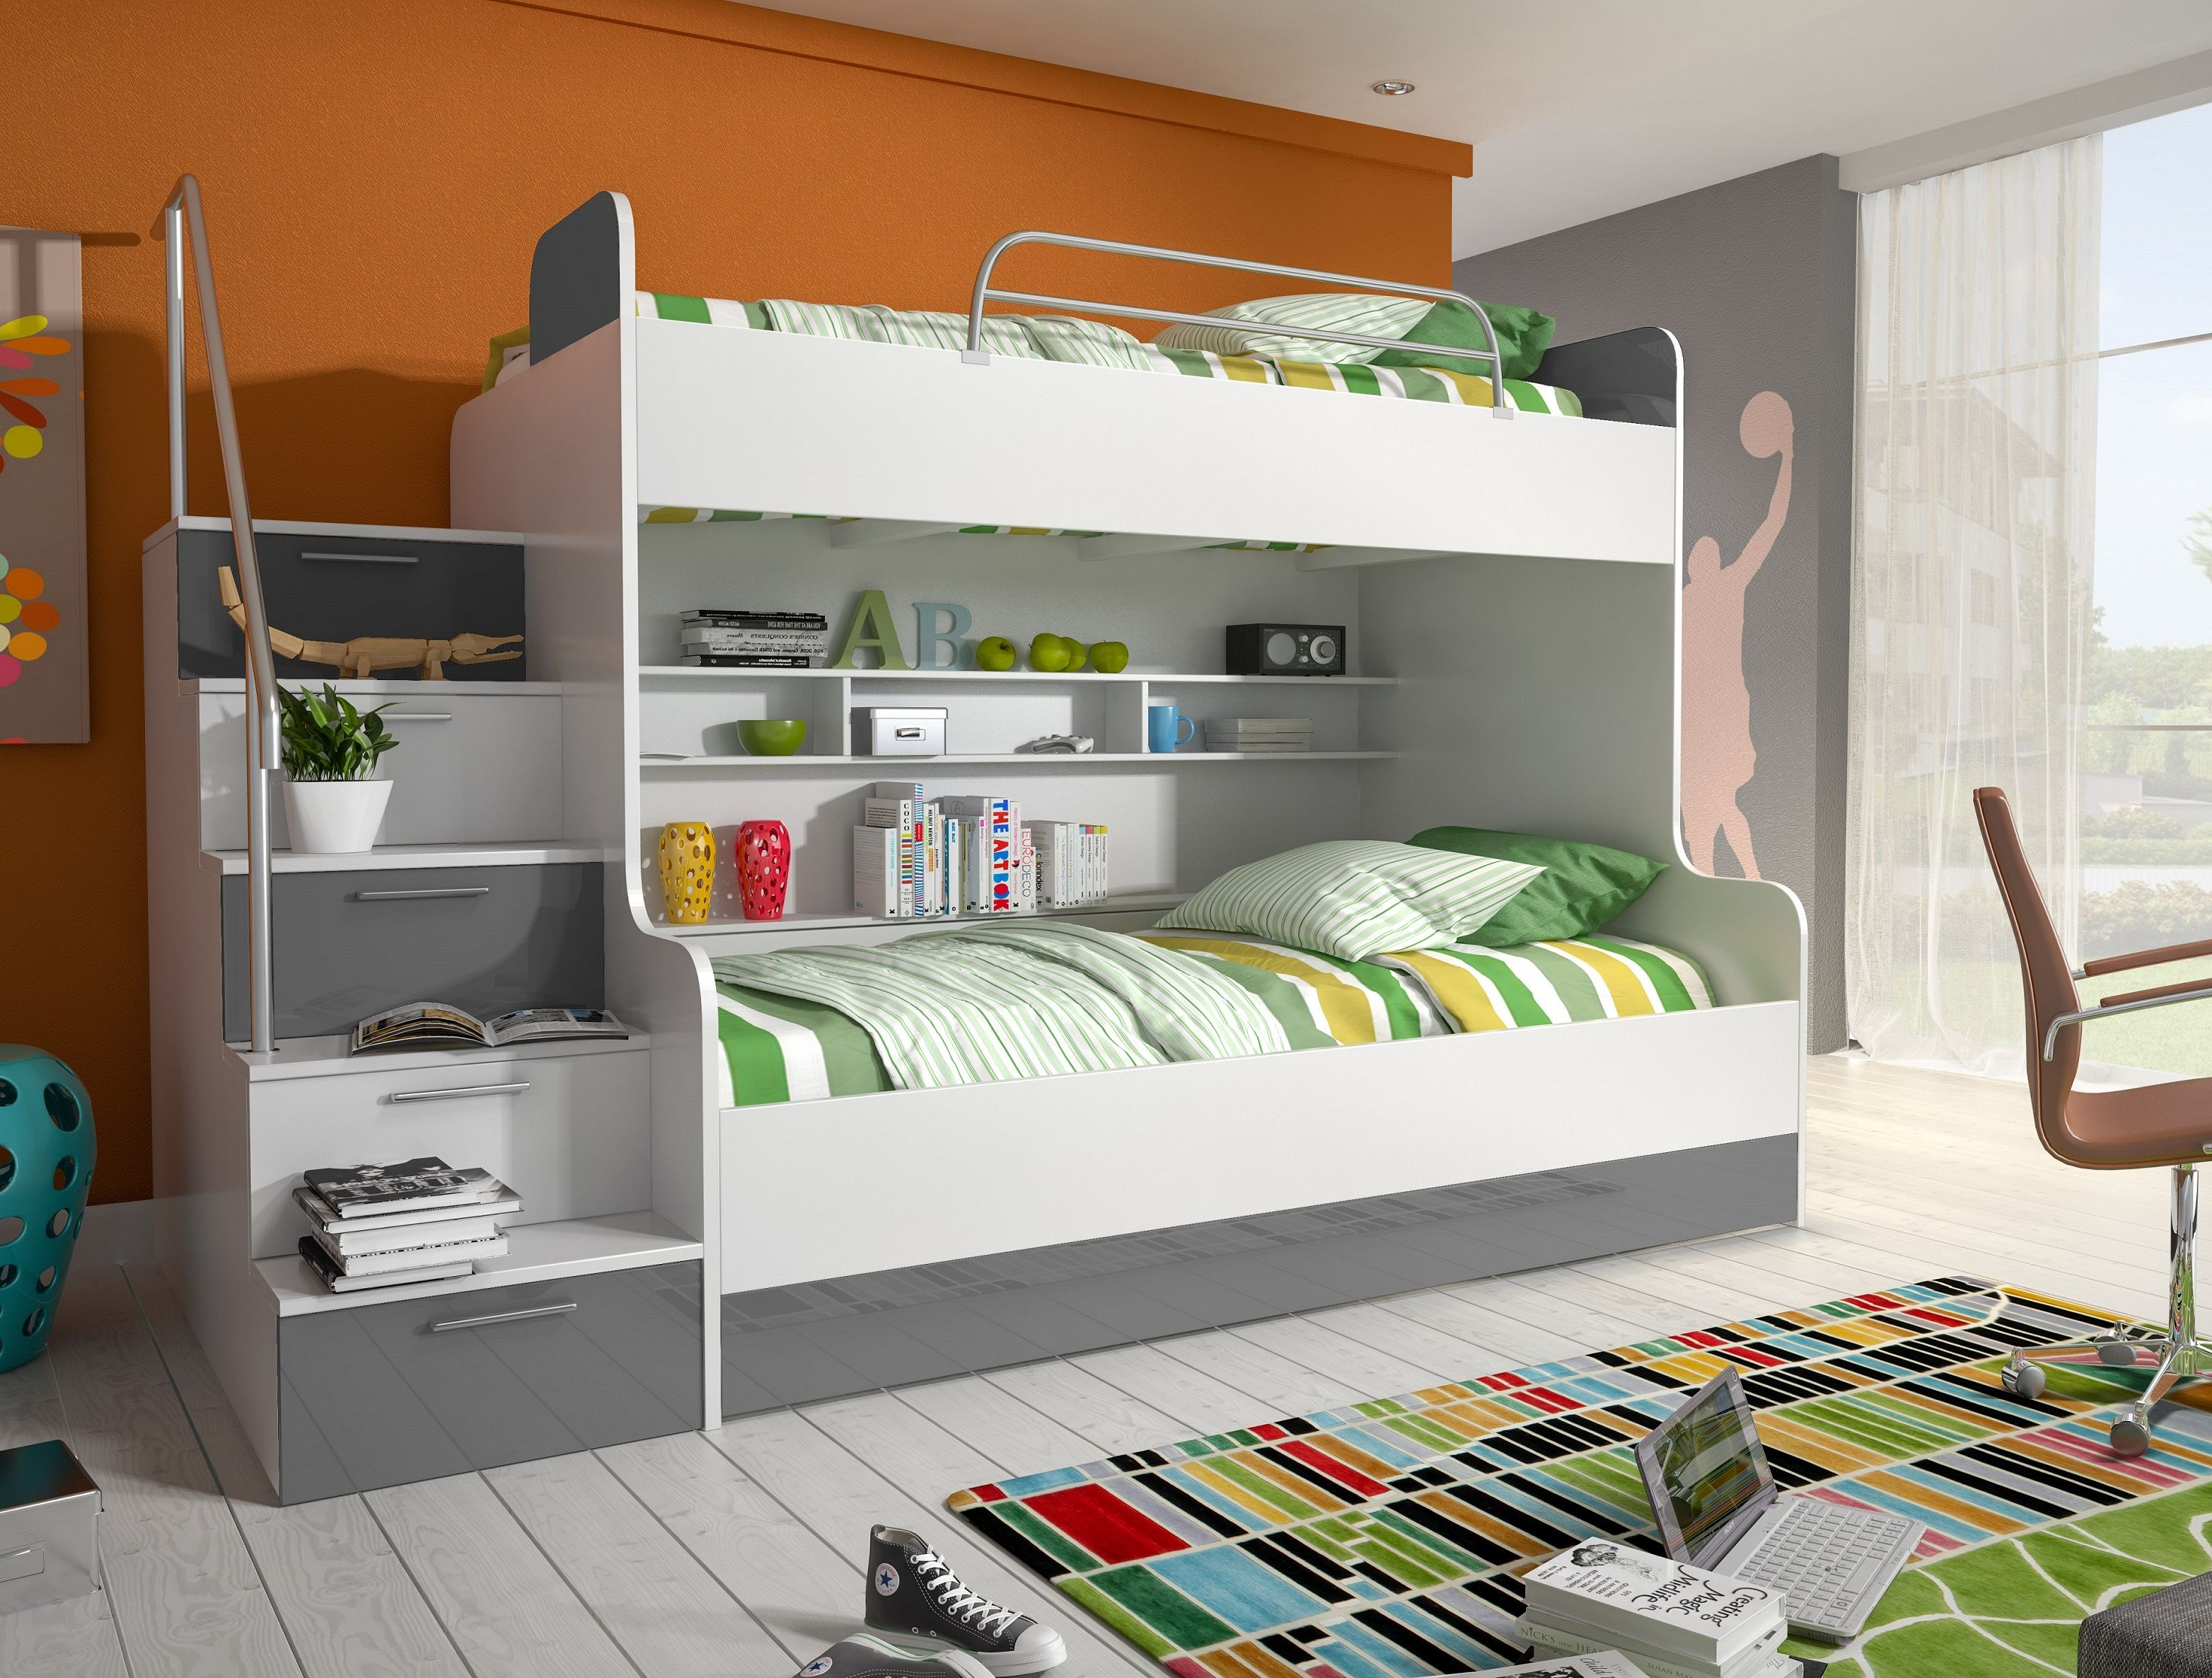 etagenbett kinderbett beto mit seitlicher treppe links etagenbett kinder weiss grau etagen. Black Bedroom Furniture Sets. Home Design Ideas